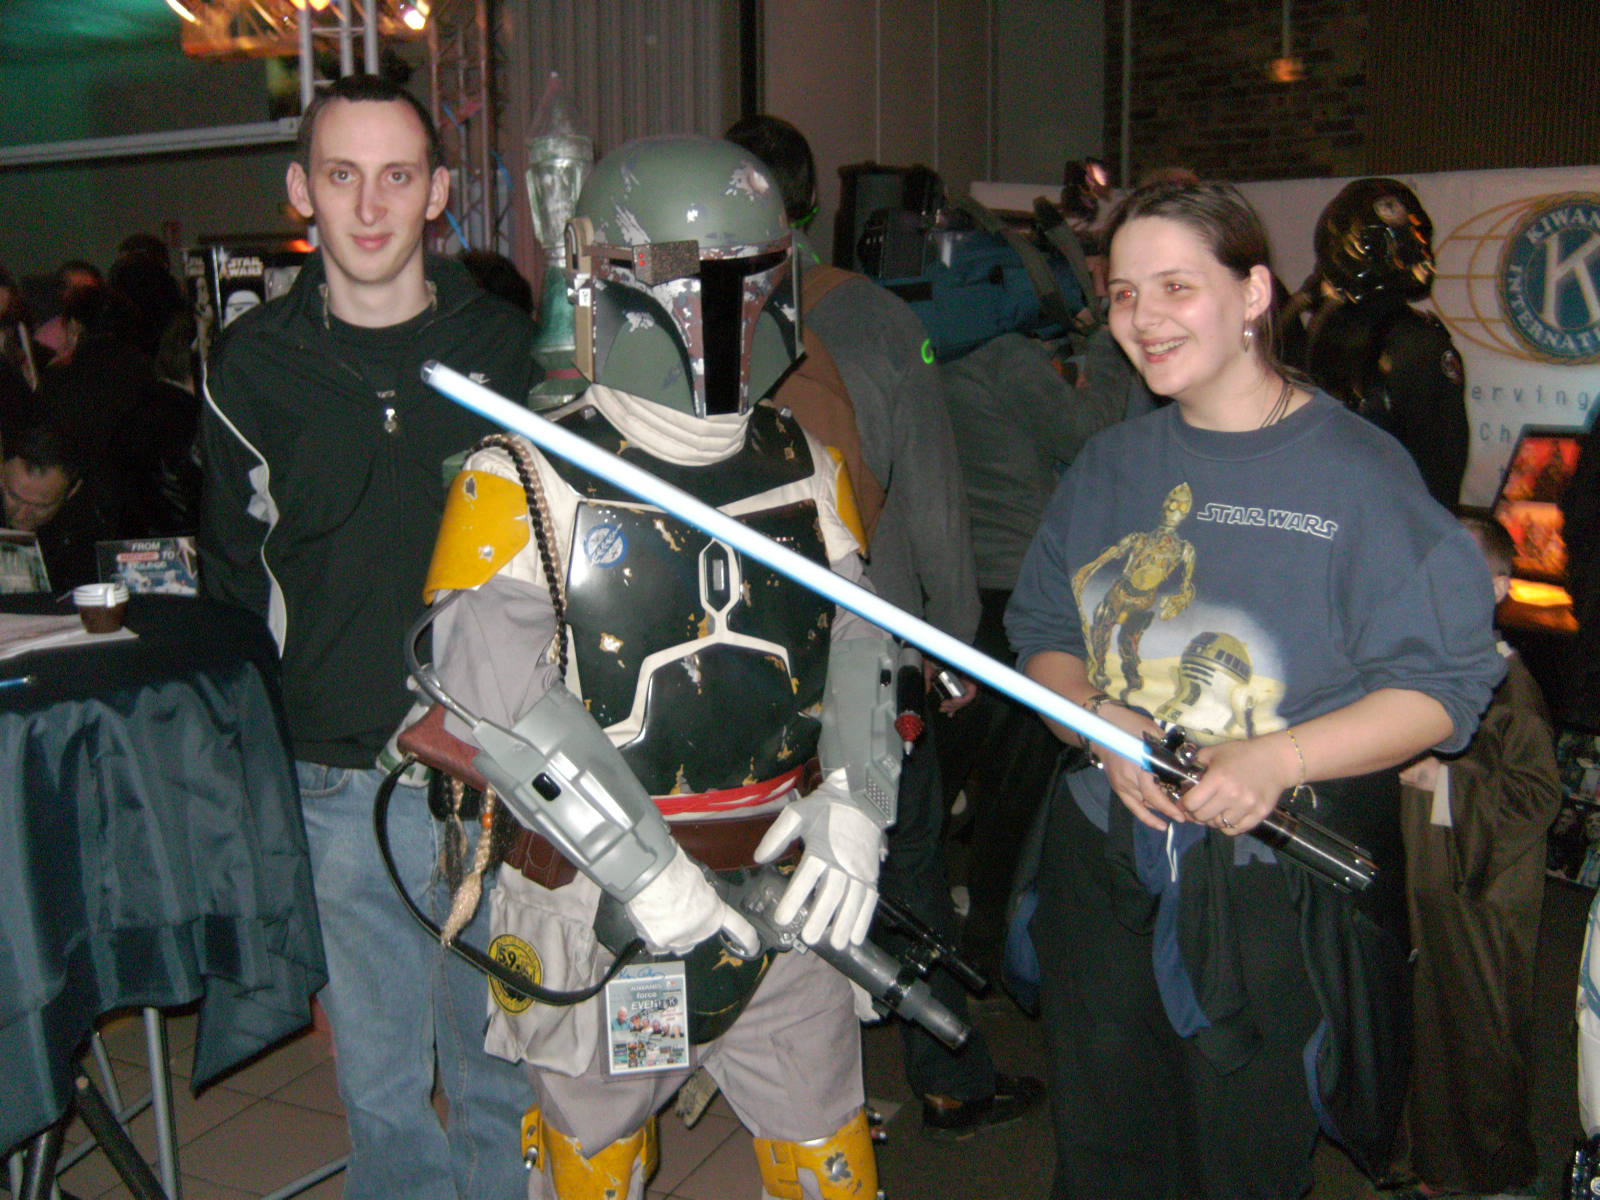 Photo 32 - Alpha13, jainasolo59 et Boba Fett